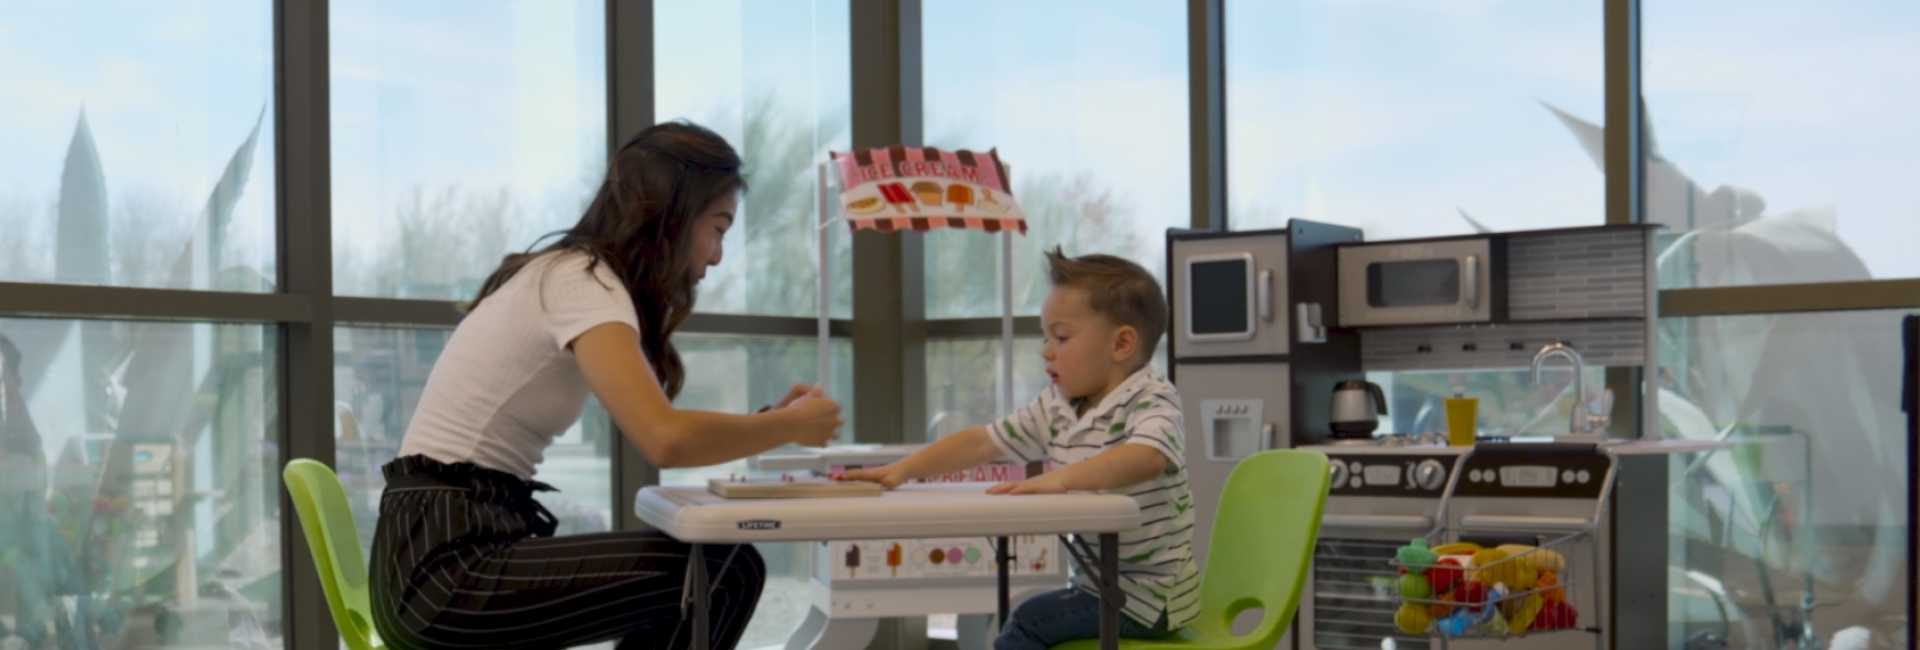 a woman and a child at a desk learning